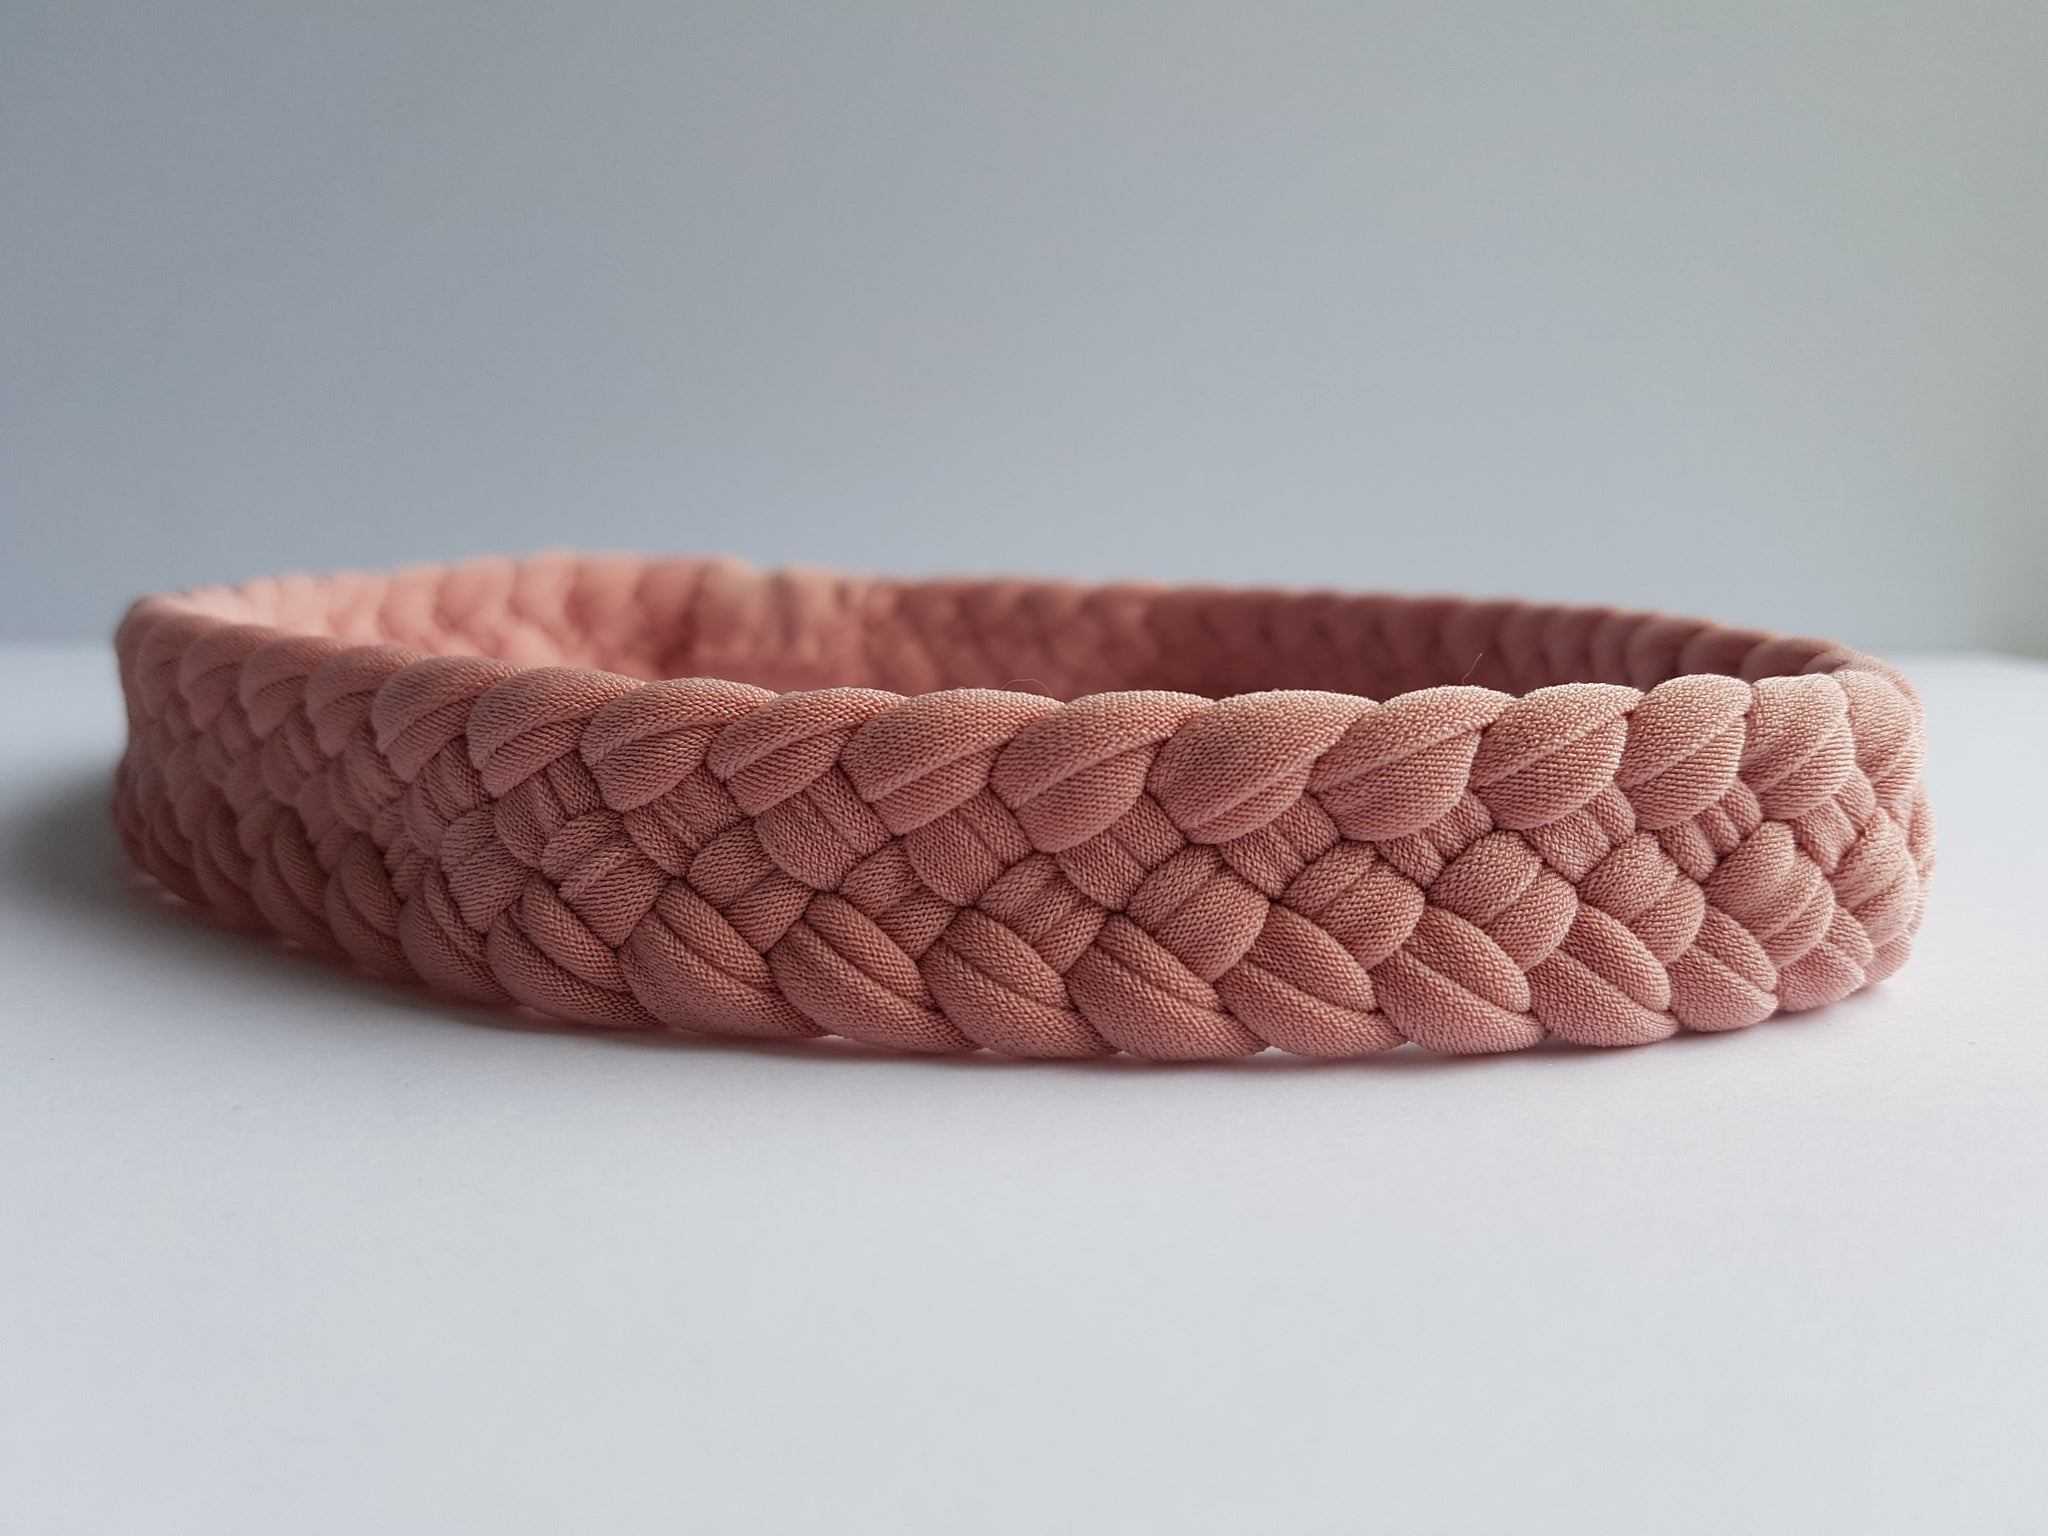 Weaved Headband in Blush | Boho Hairband | Nautically Inspired